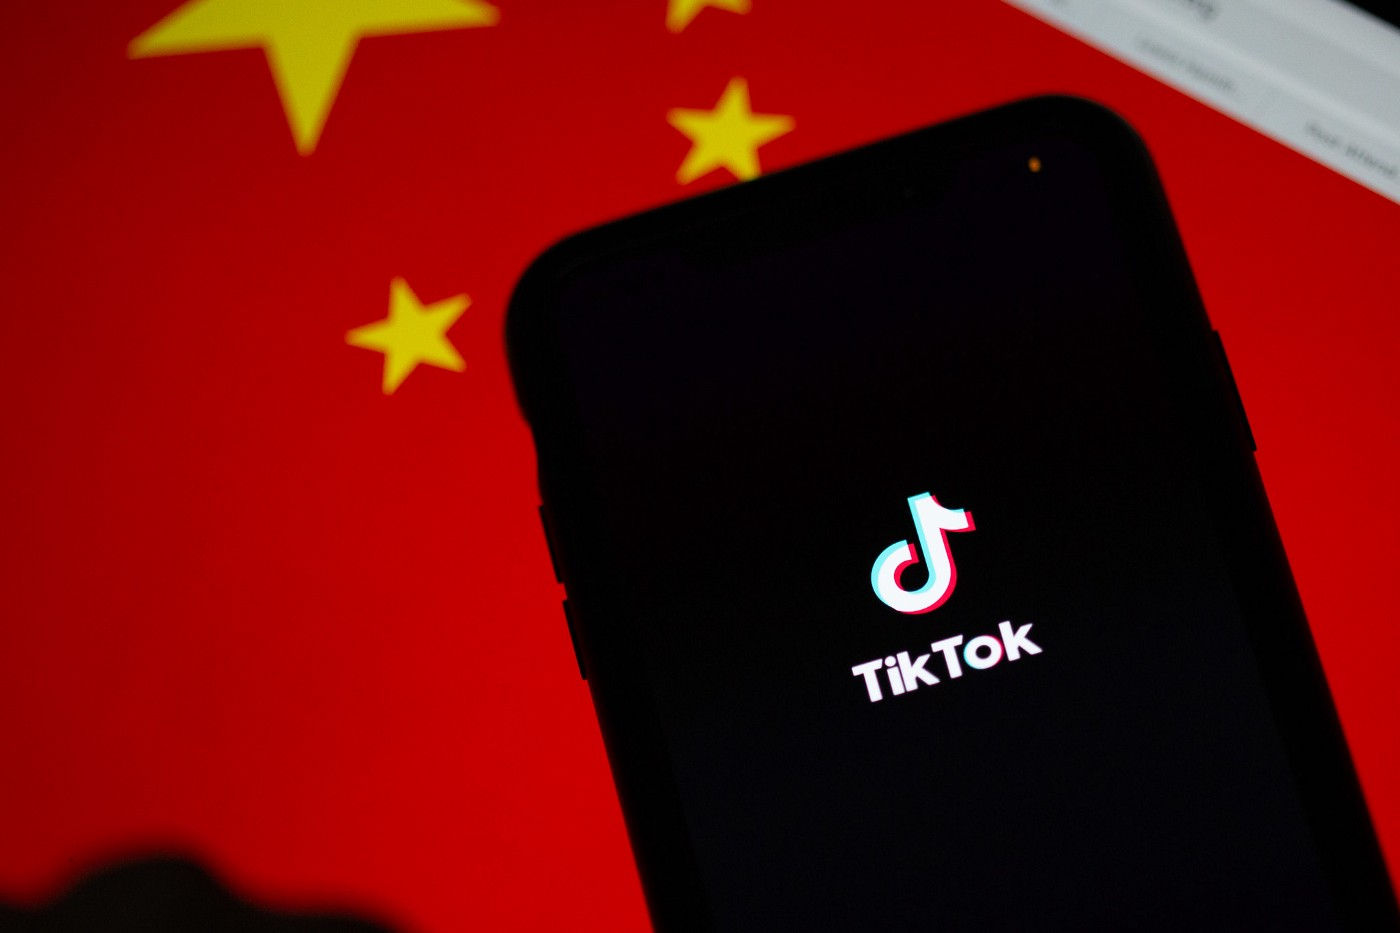 A phone displaying the TikTok logo is placed in front of a Chinese flag.